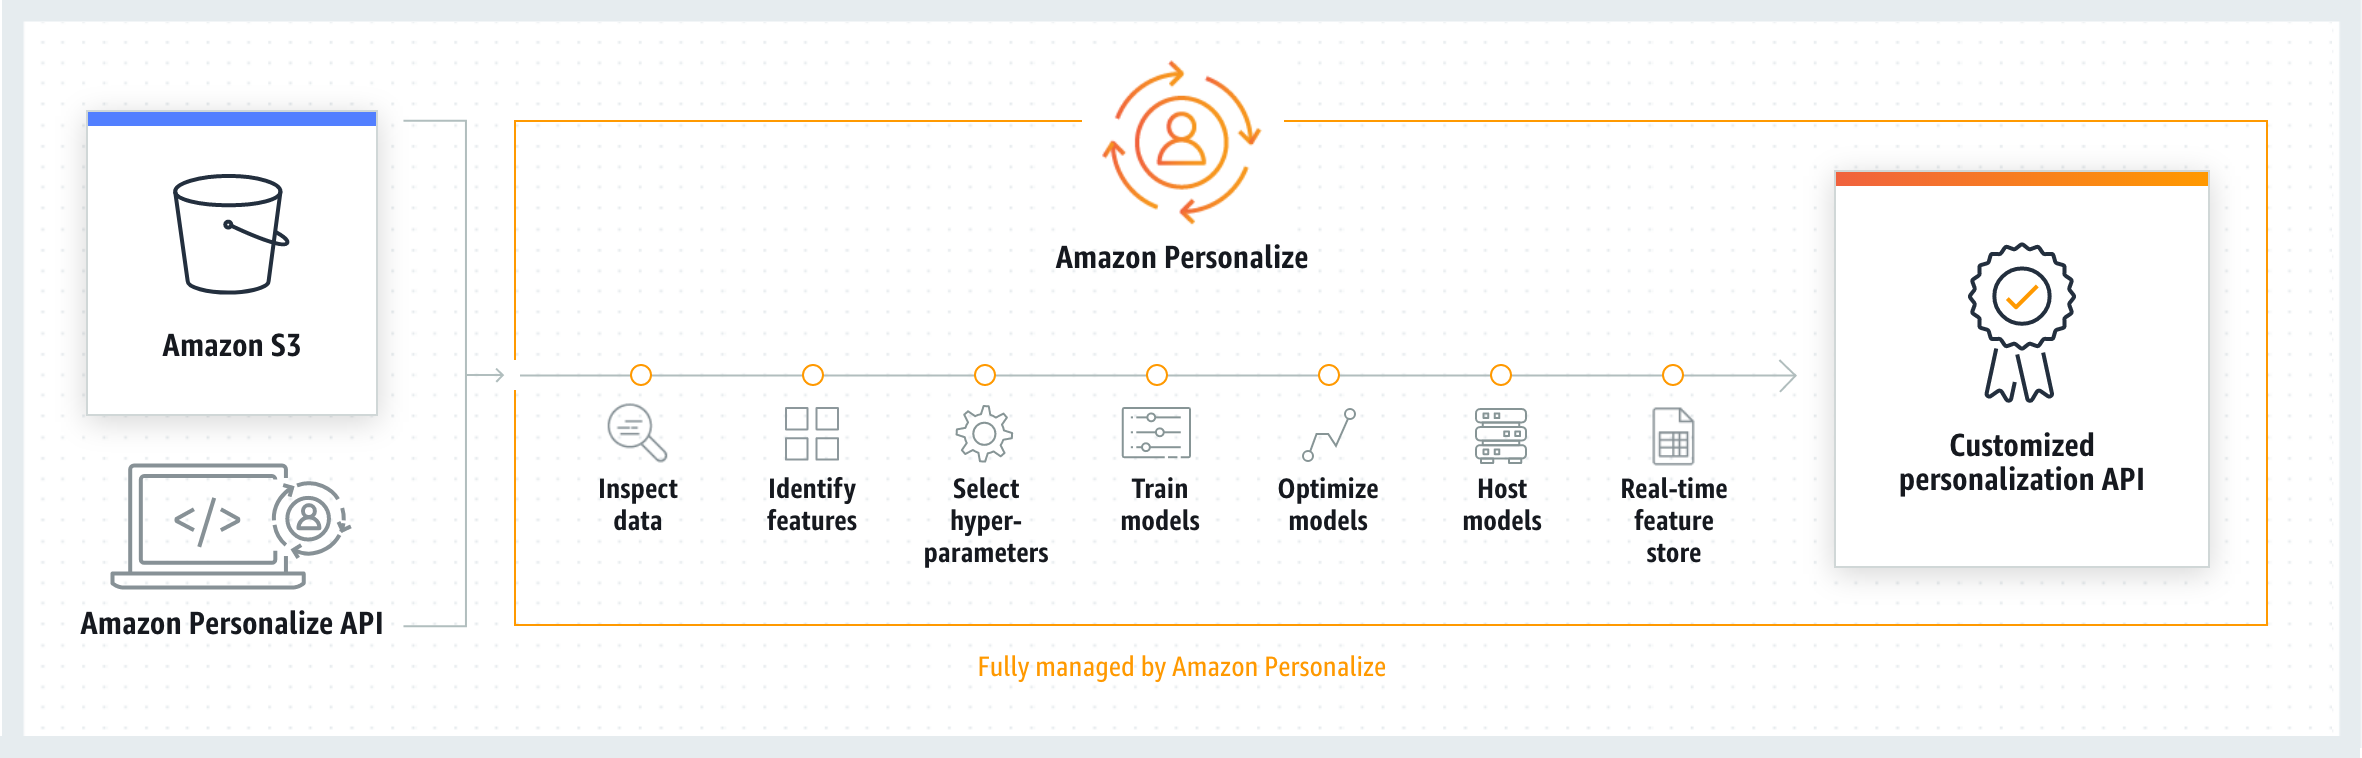 How Amazon Personalize works